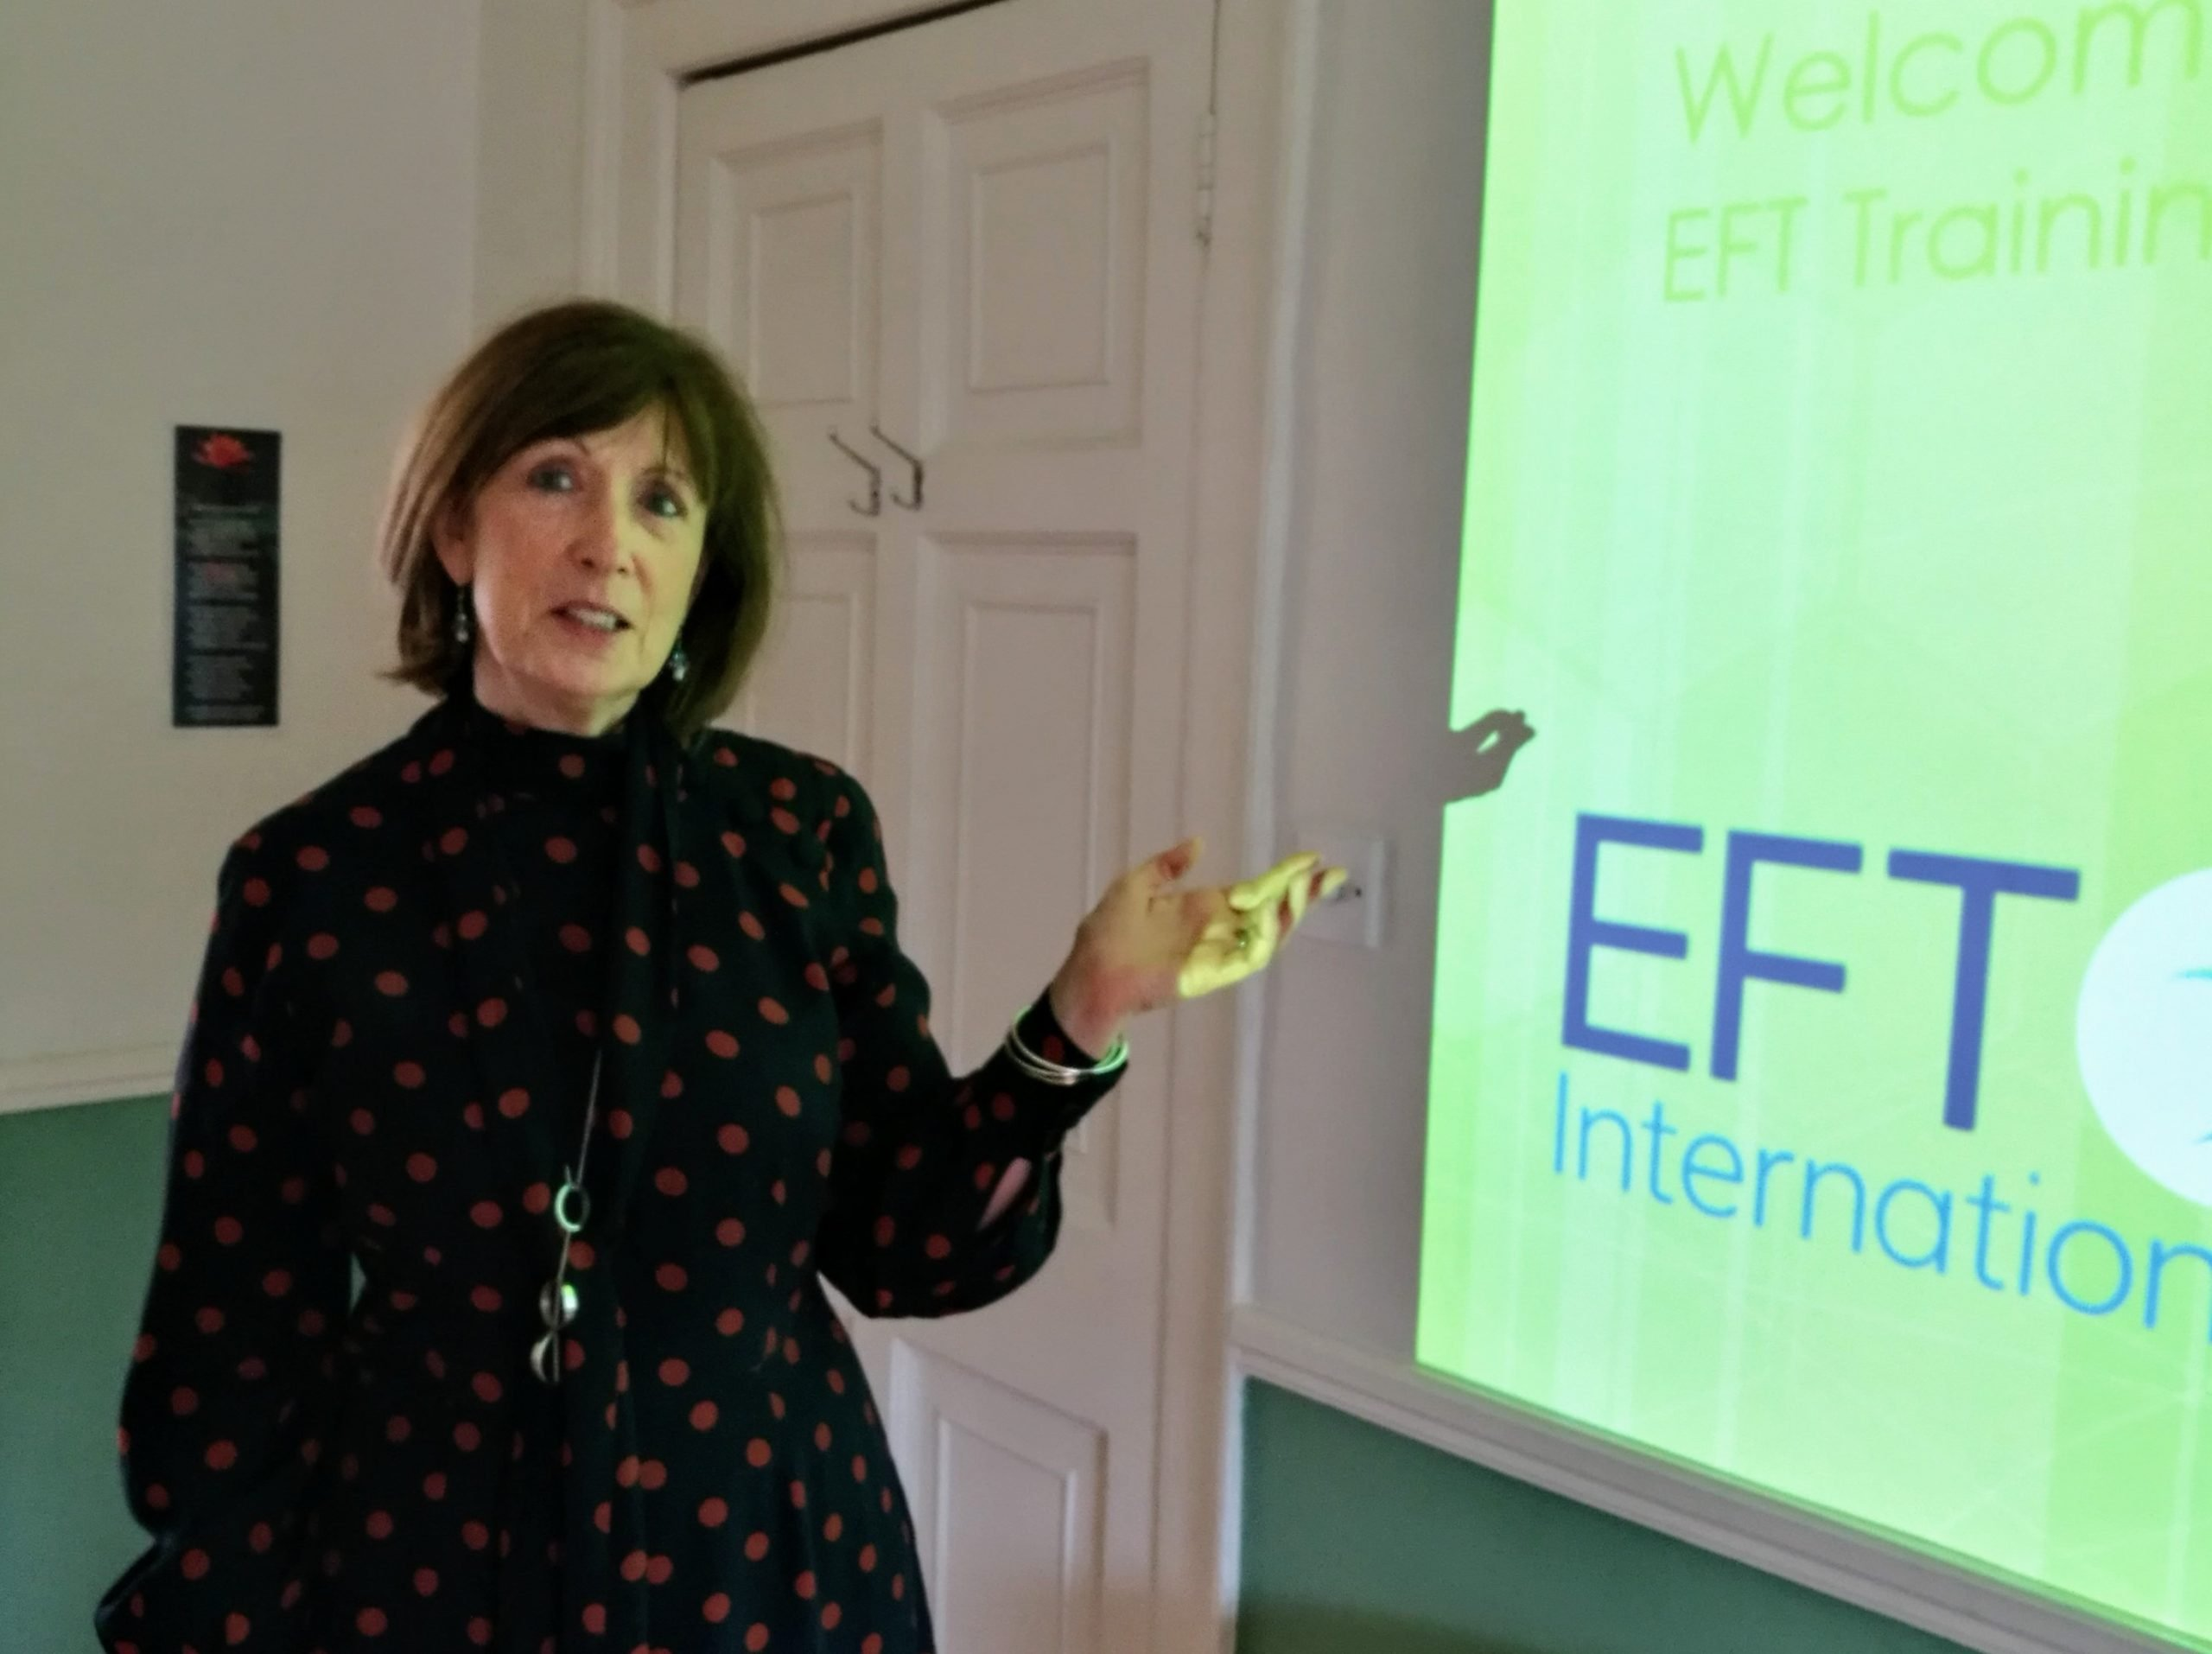 Grainne O'Neill Talks About EFT Tapping